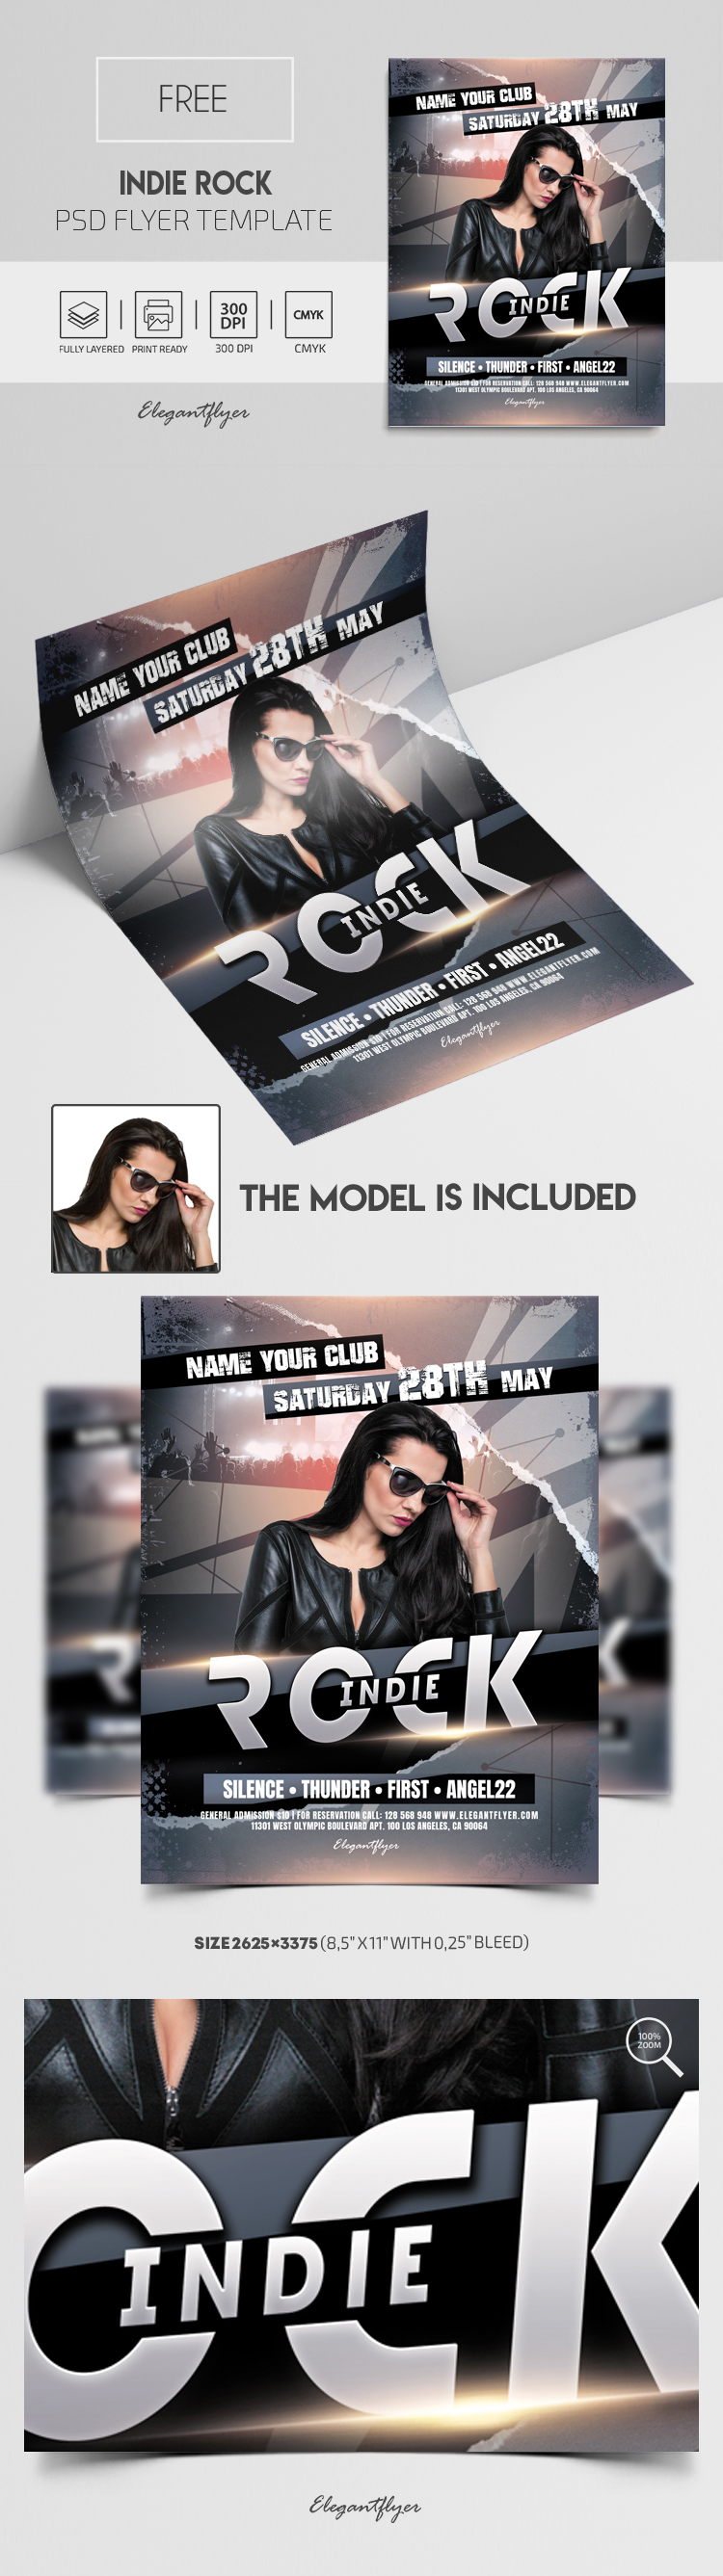 Indie Rock – Free PSD Flyer Template